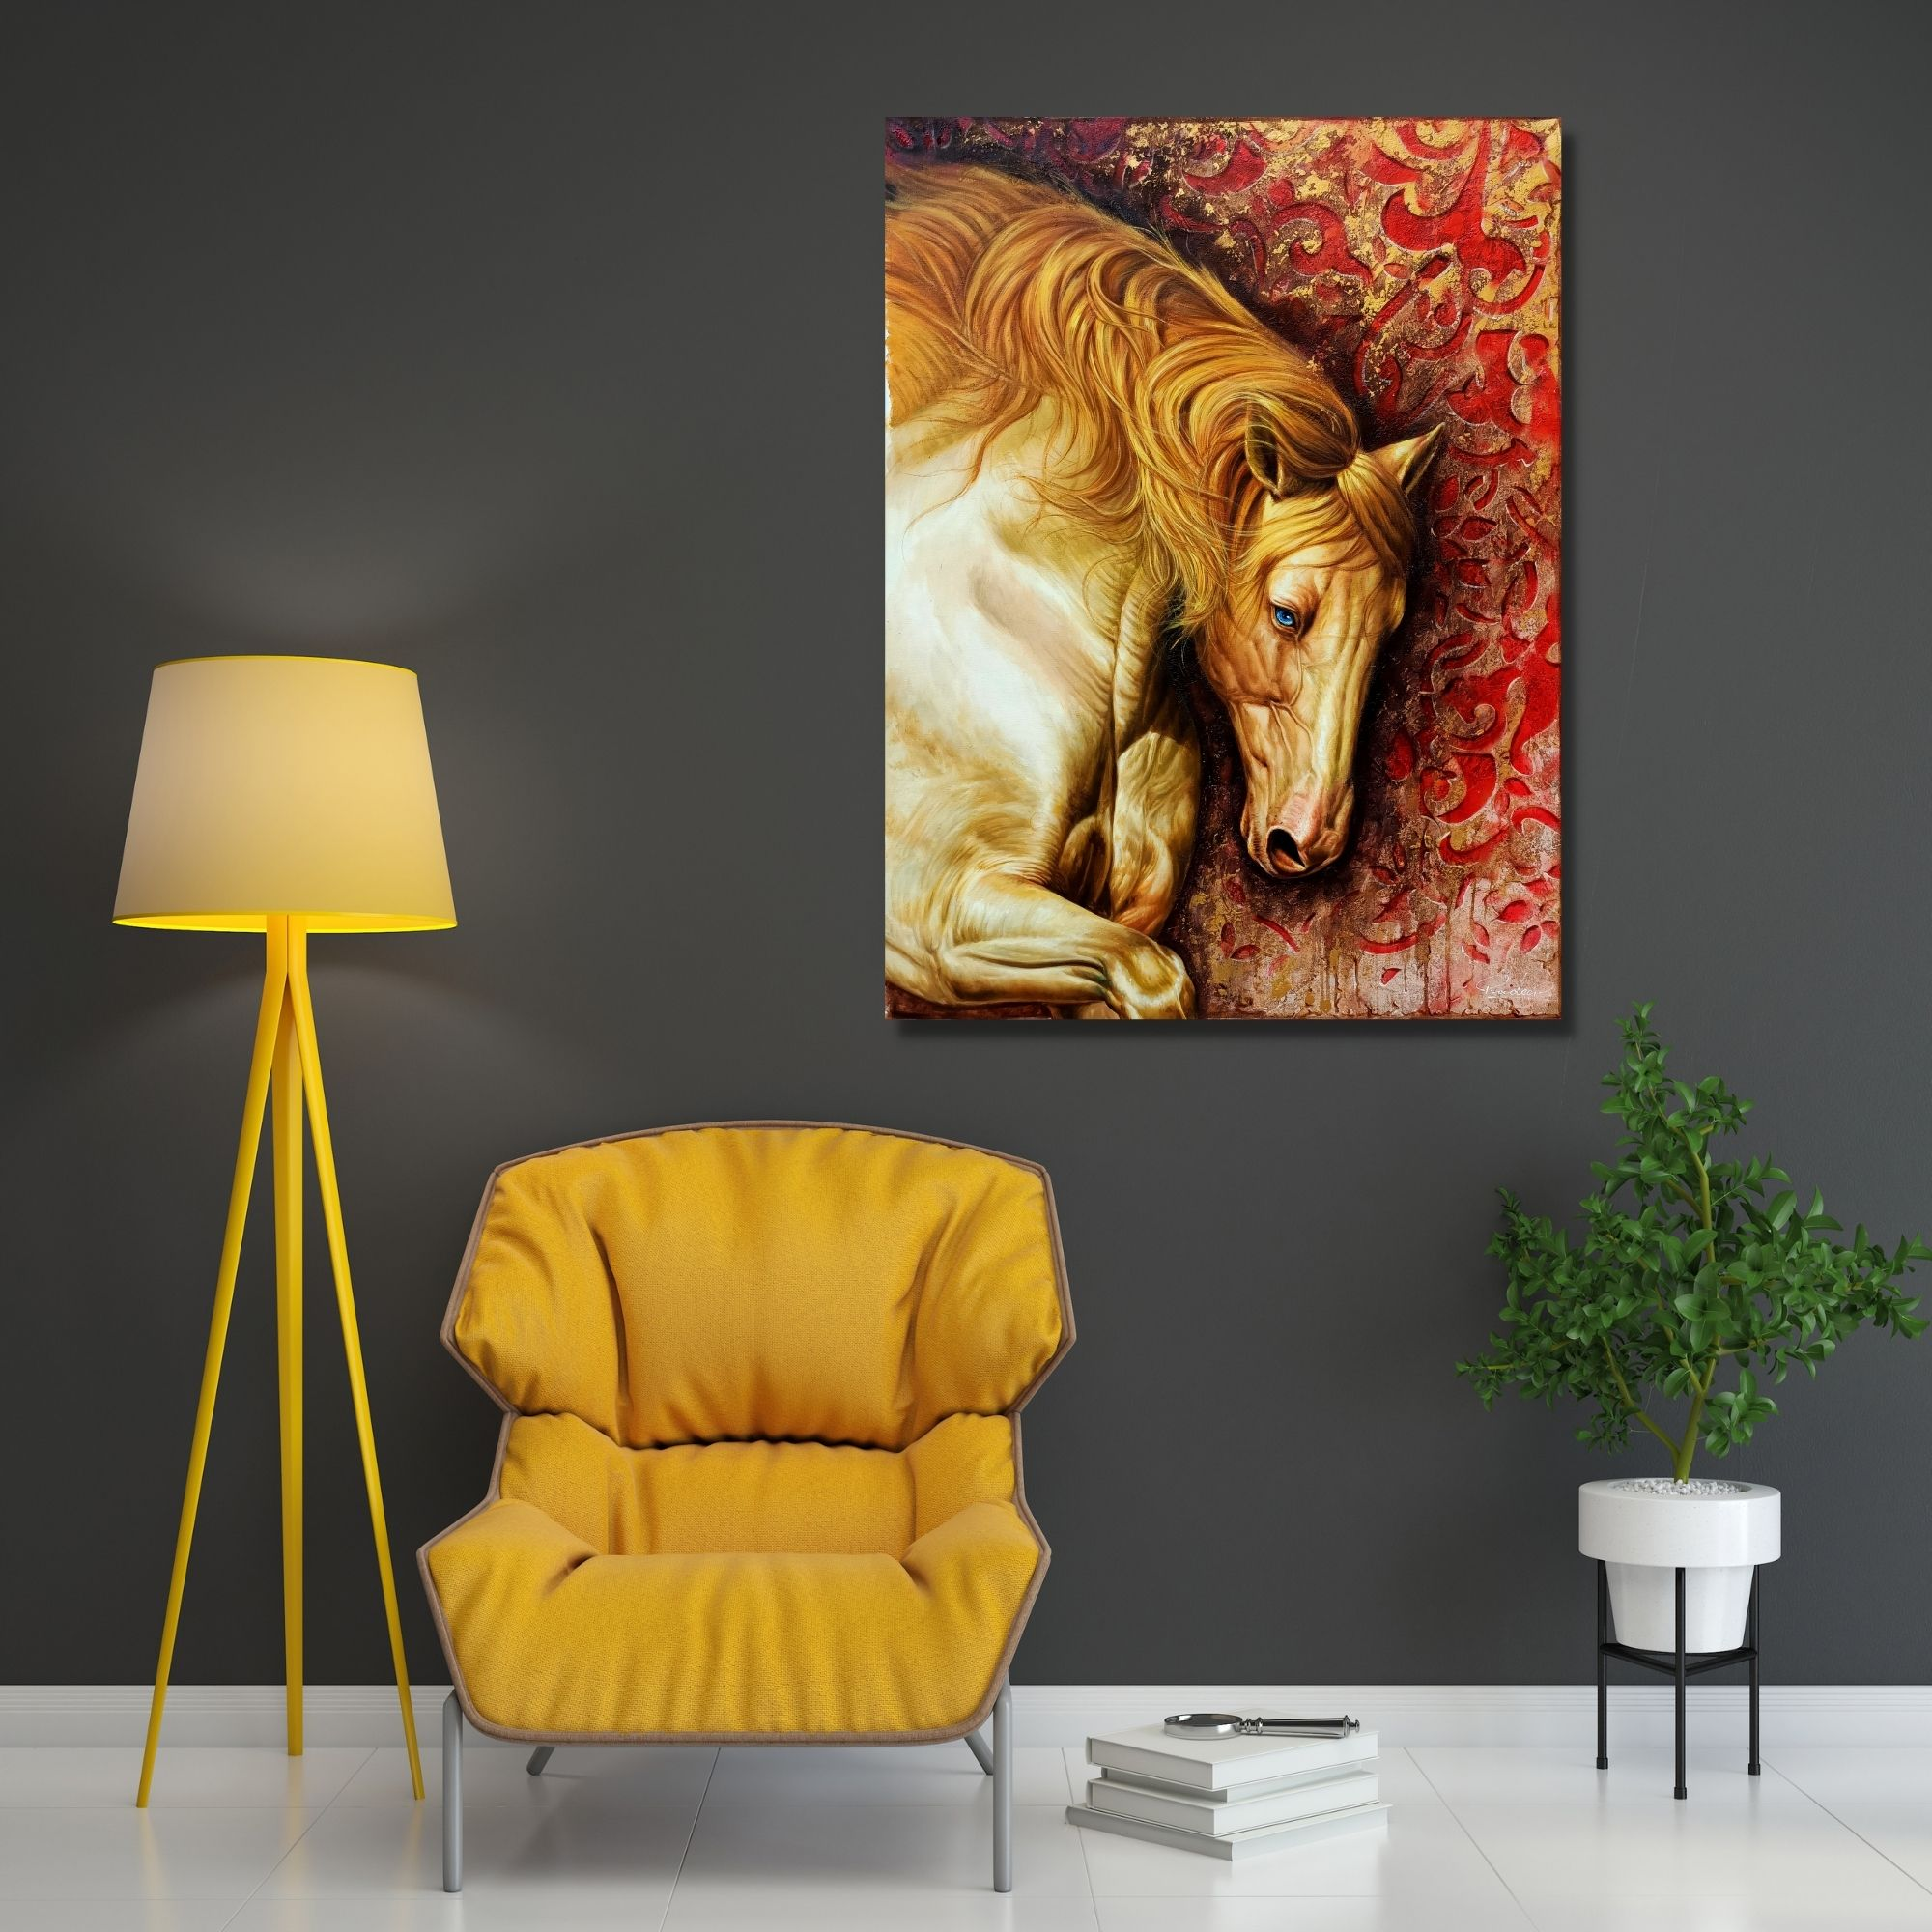 The Royal Horses (Vol 2)_Oil on Canvas_30x40 (Inch)